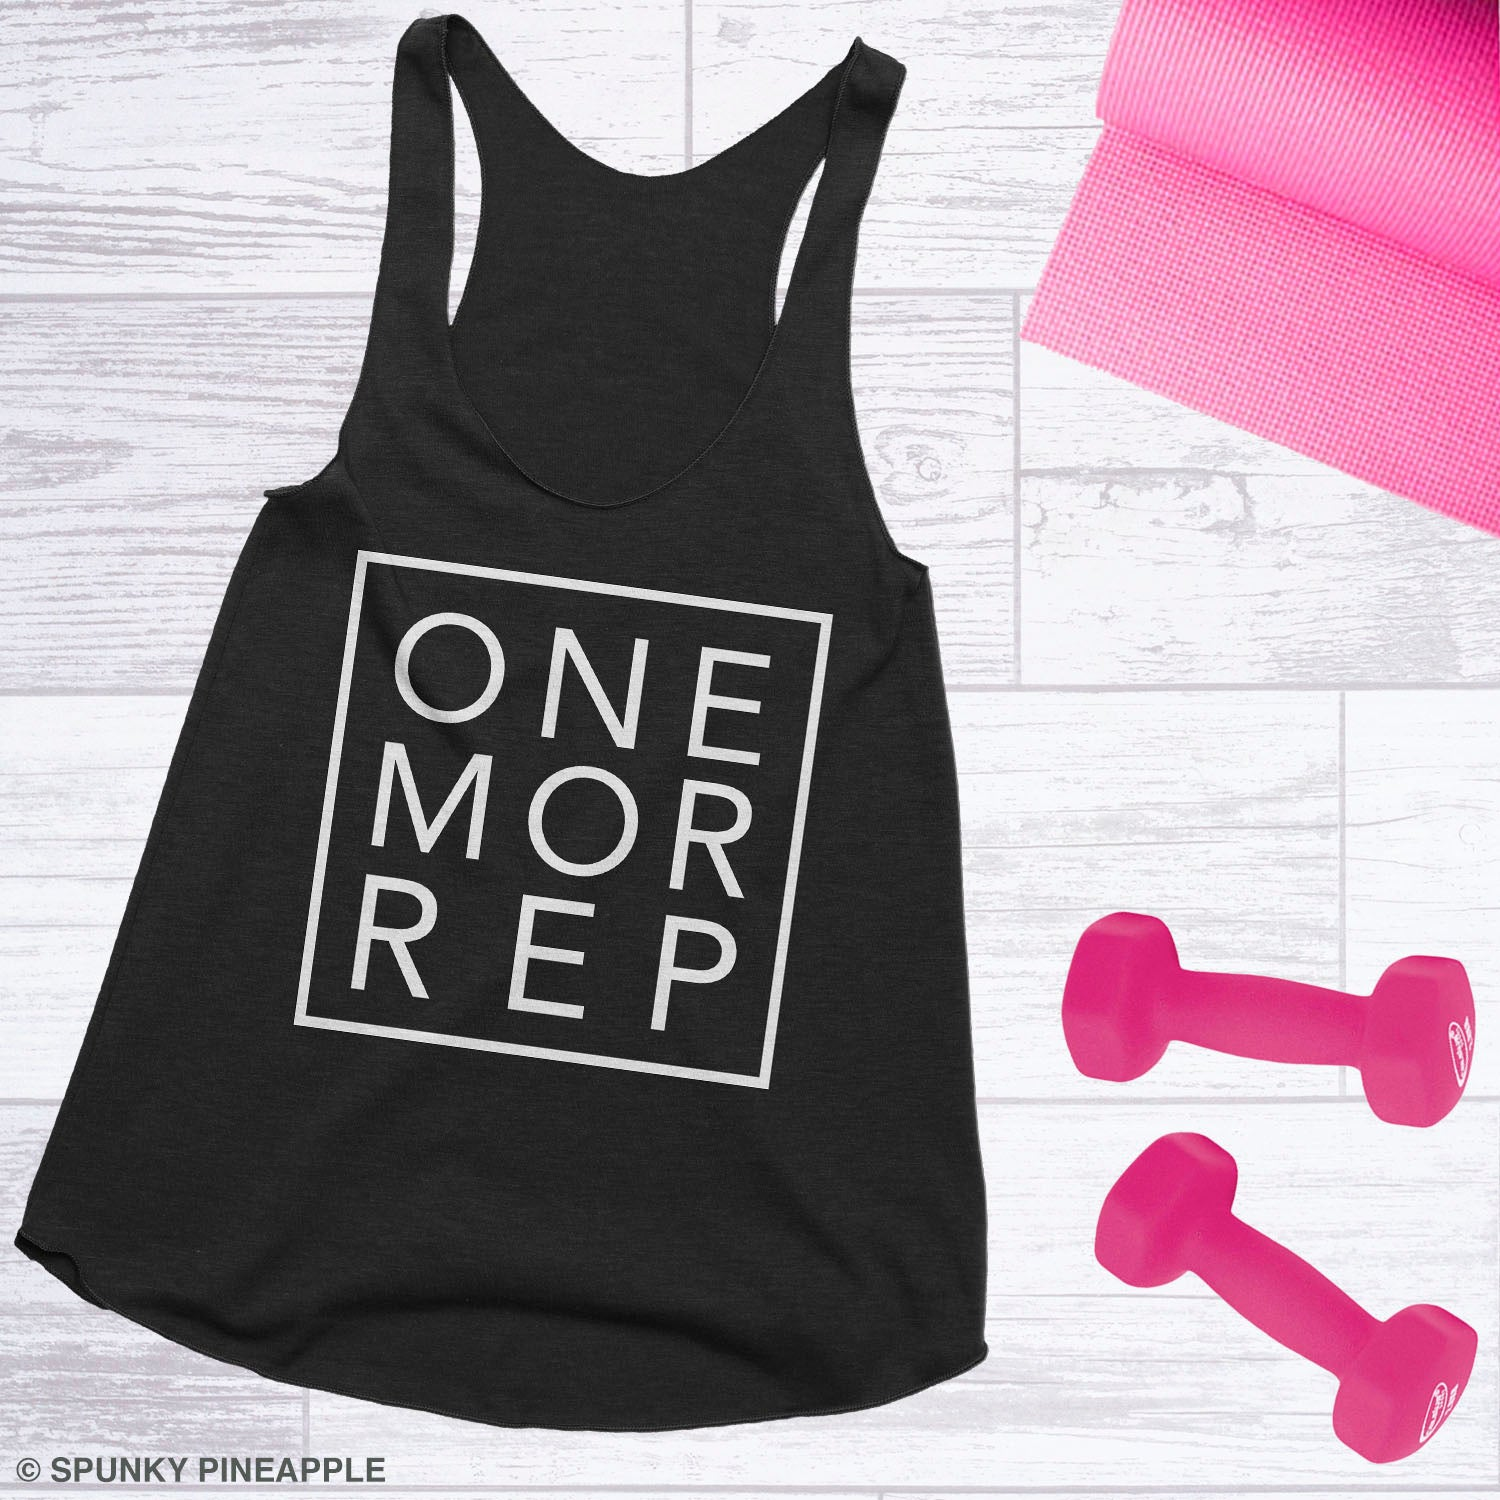 One More Rep Women's Weightlifting Workout Tank Top